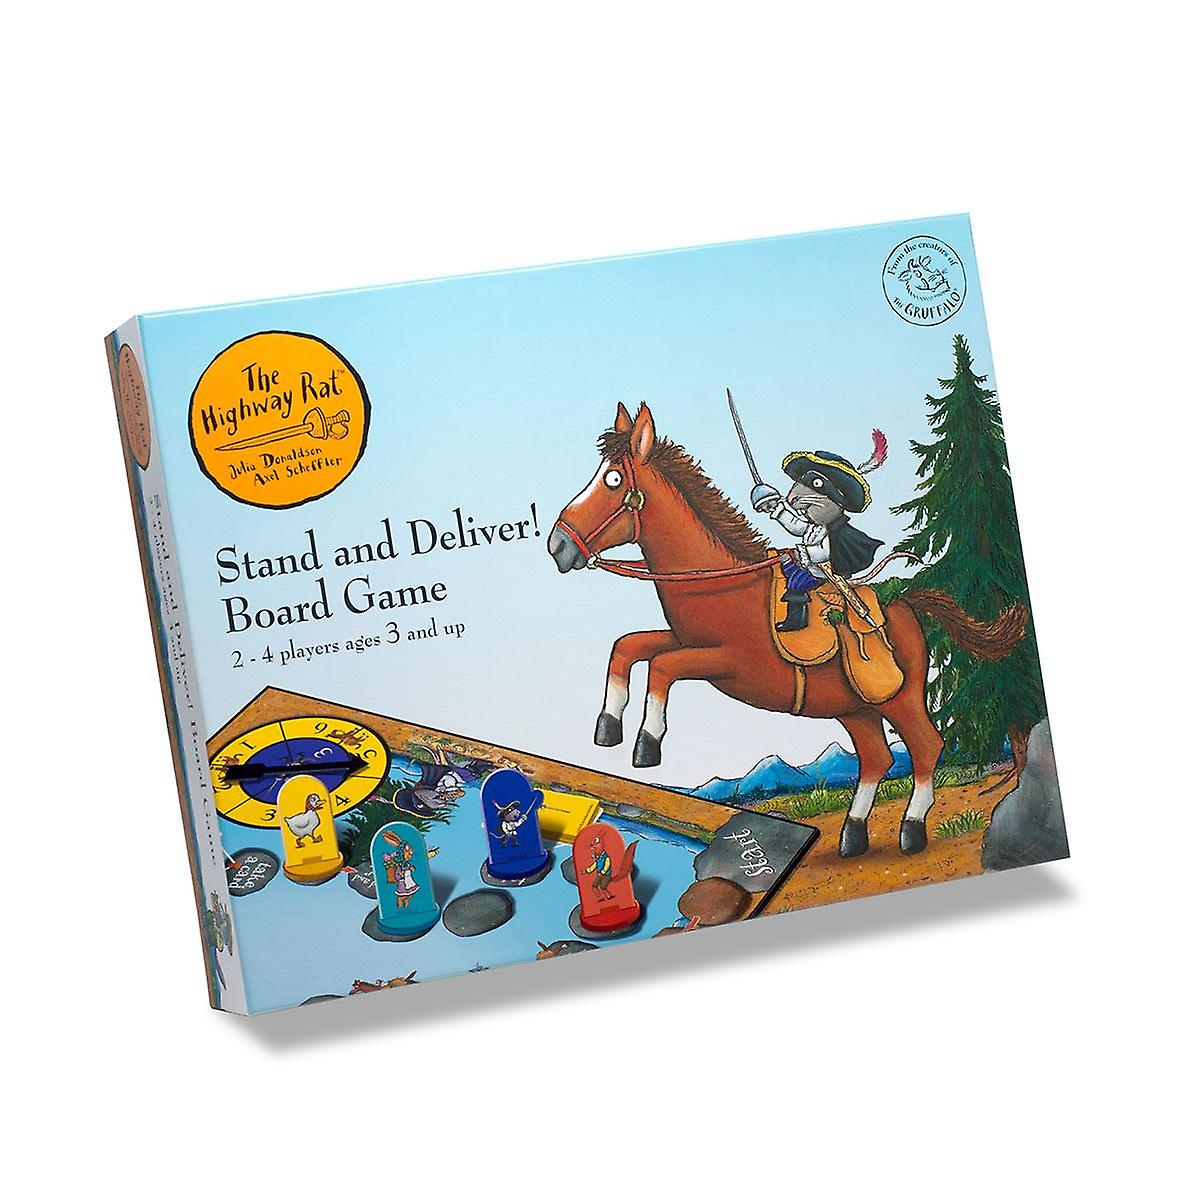 The Highway Rat - Stand and Deliver! Board Game